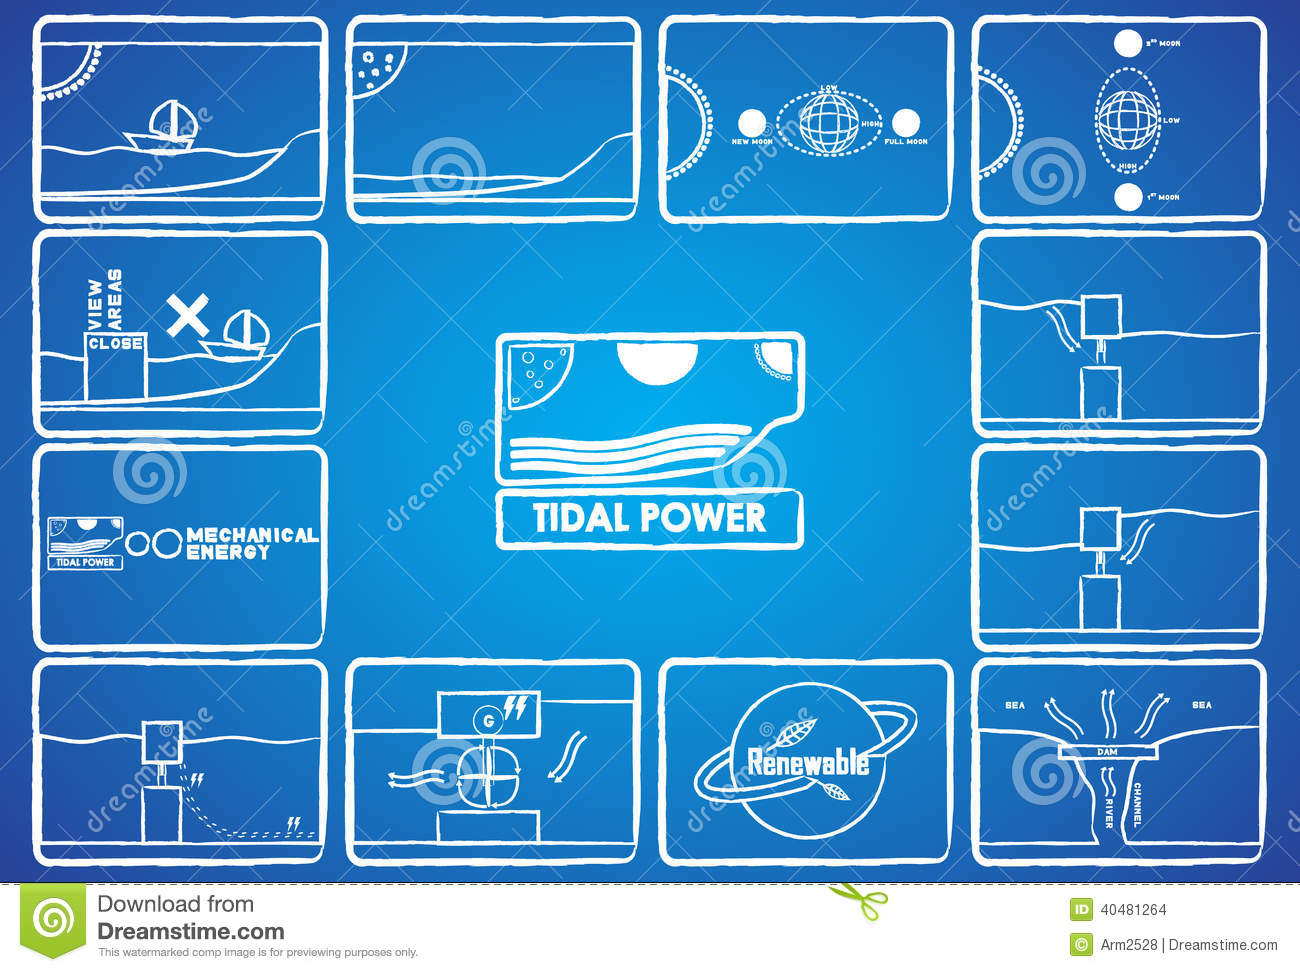 hight resolution of tidal power with 12 icon